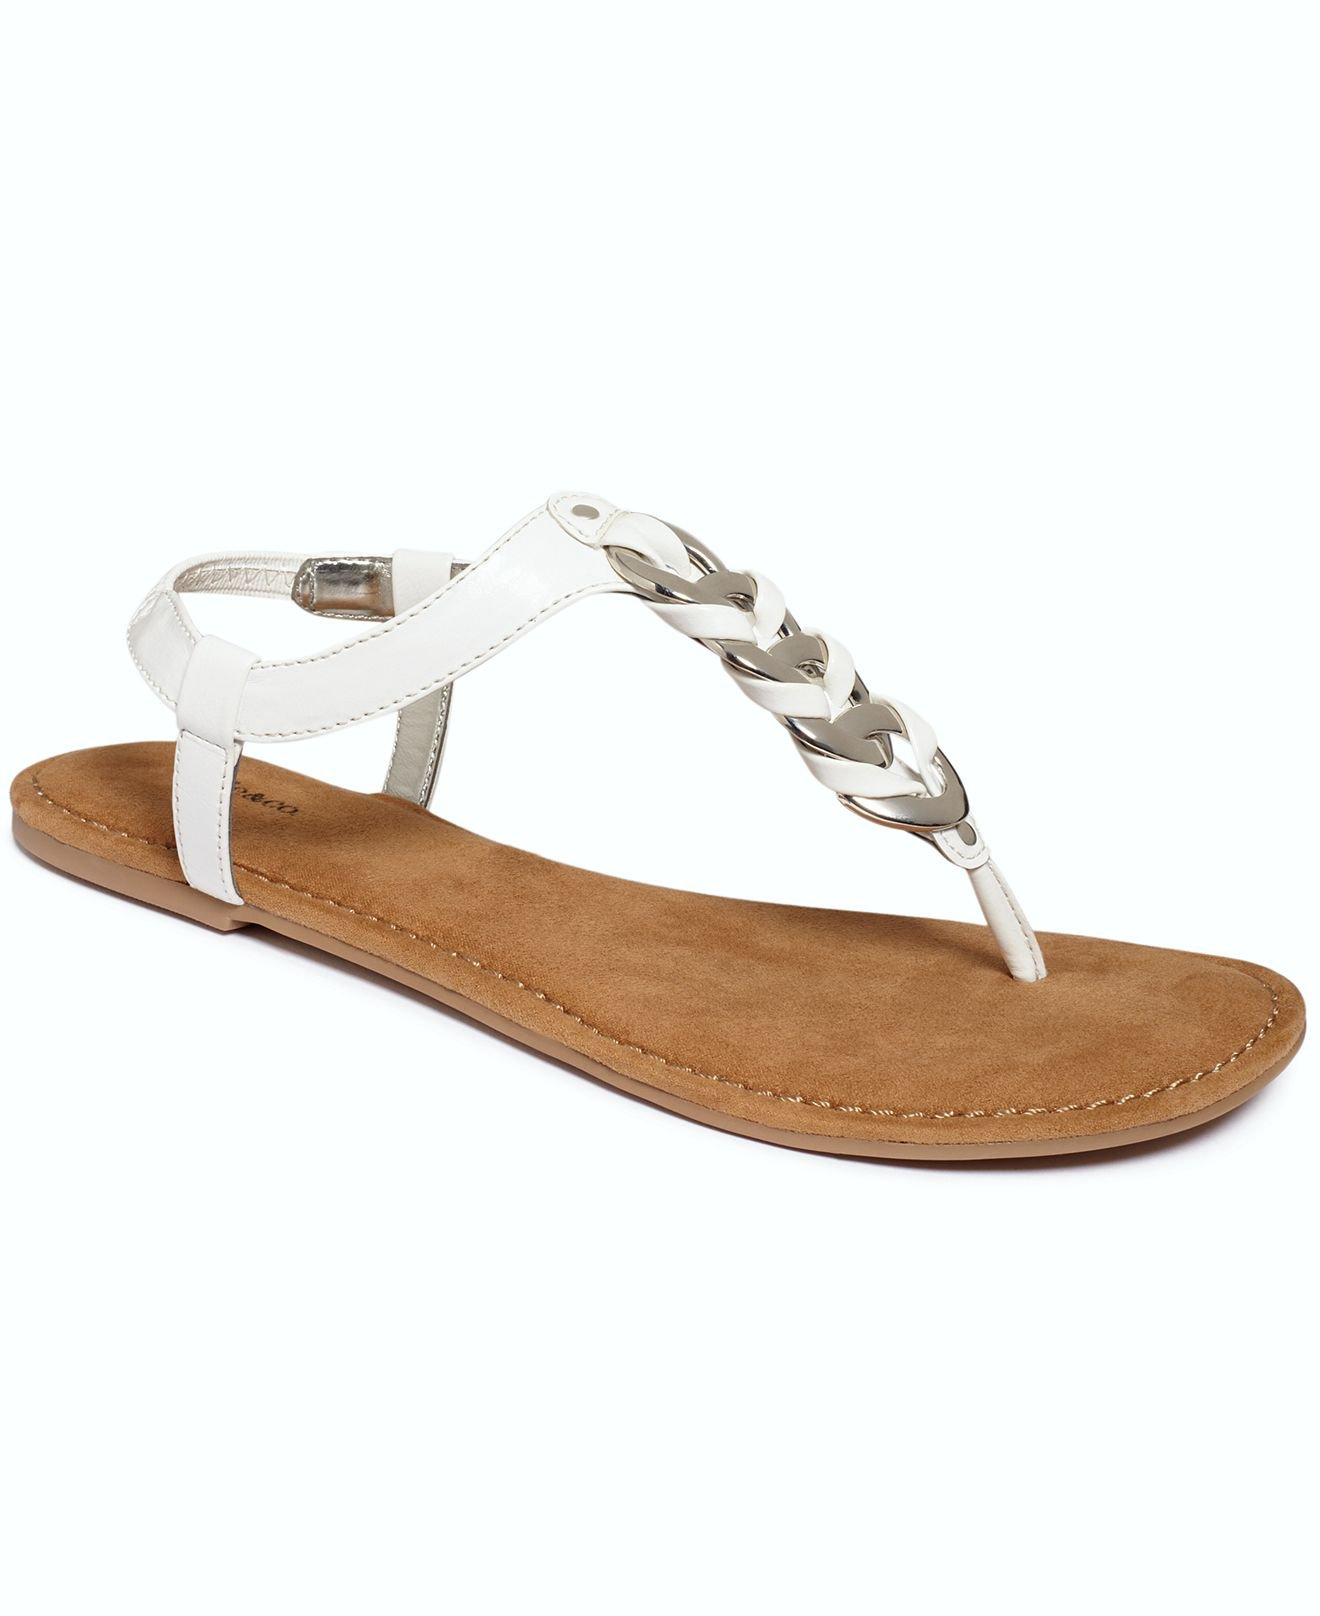 style co shoes jinger flat from macys